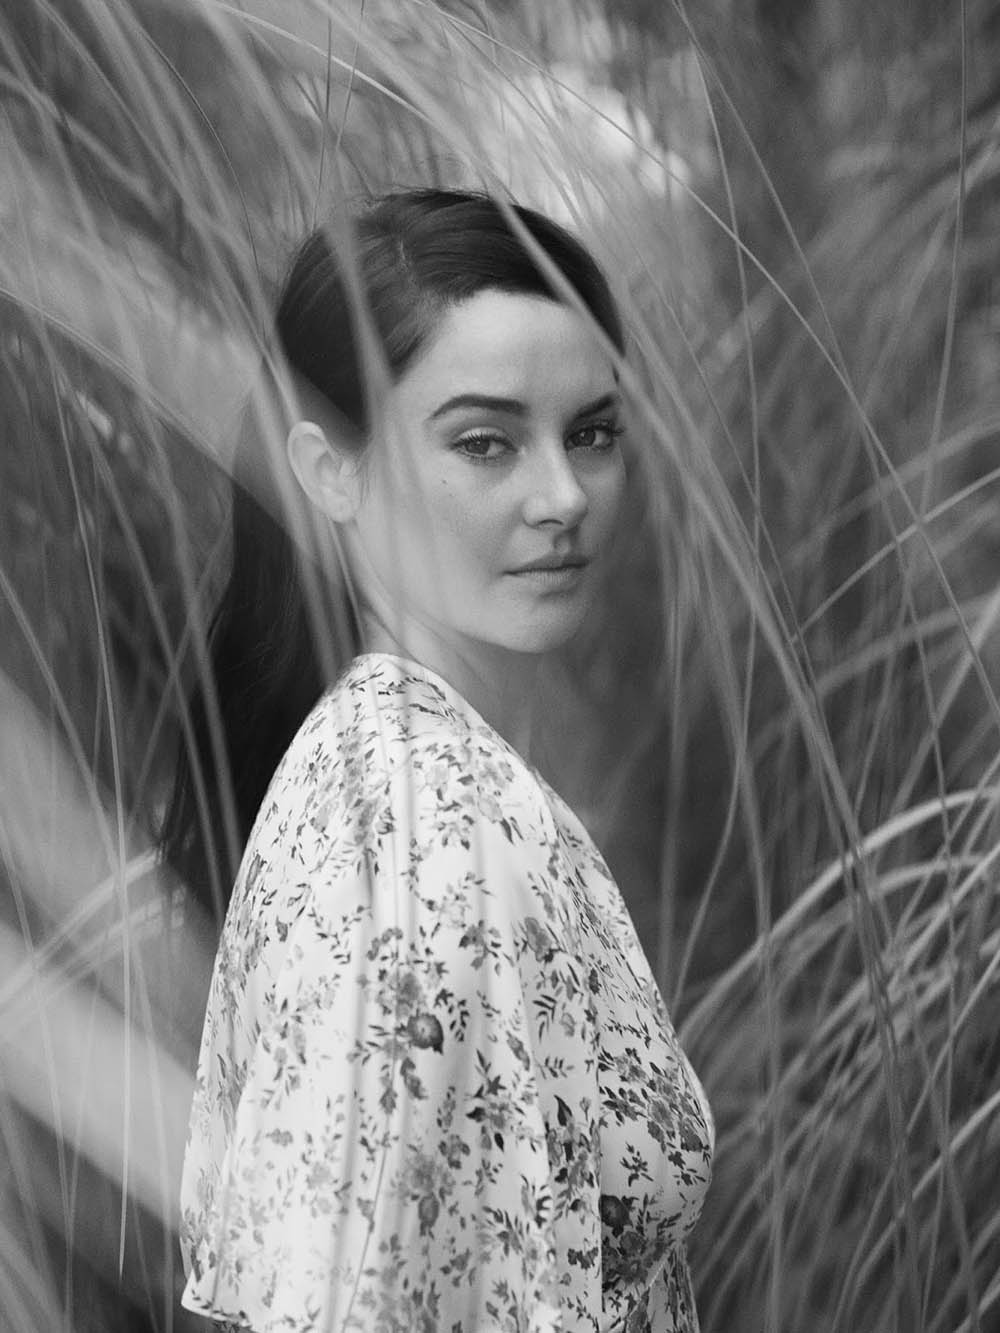 Shailene Woodley covers Porter Edit June 1st, 2018 by Matthew Sprout